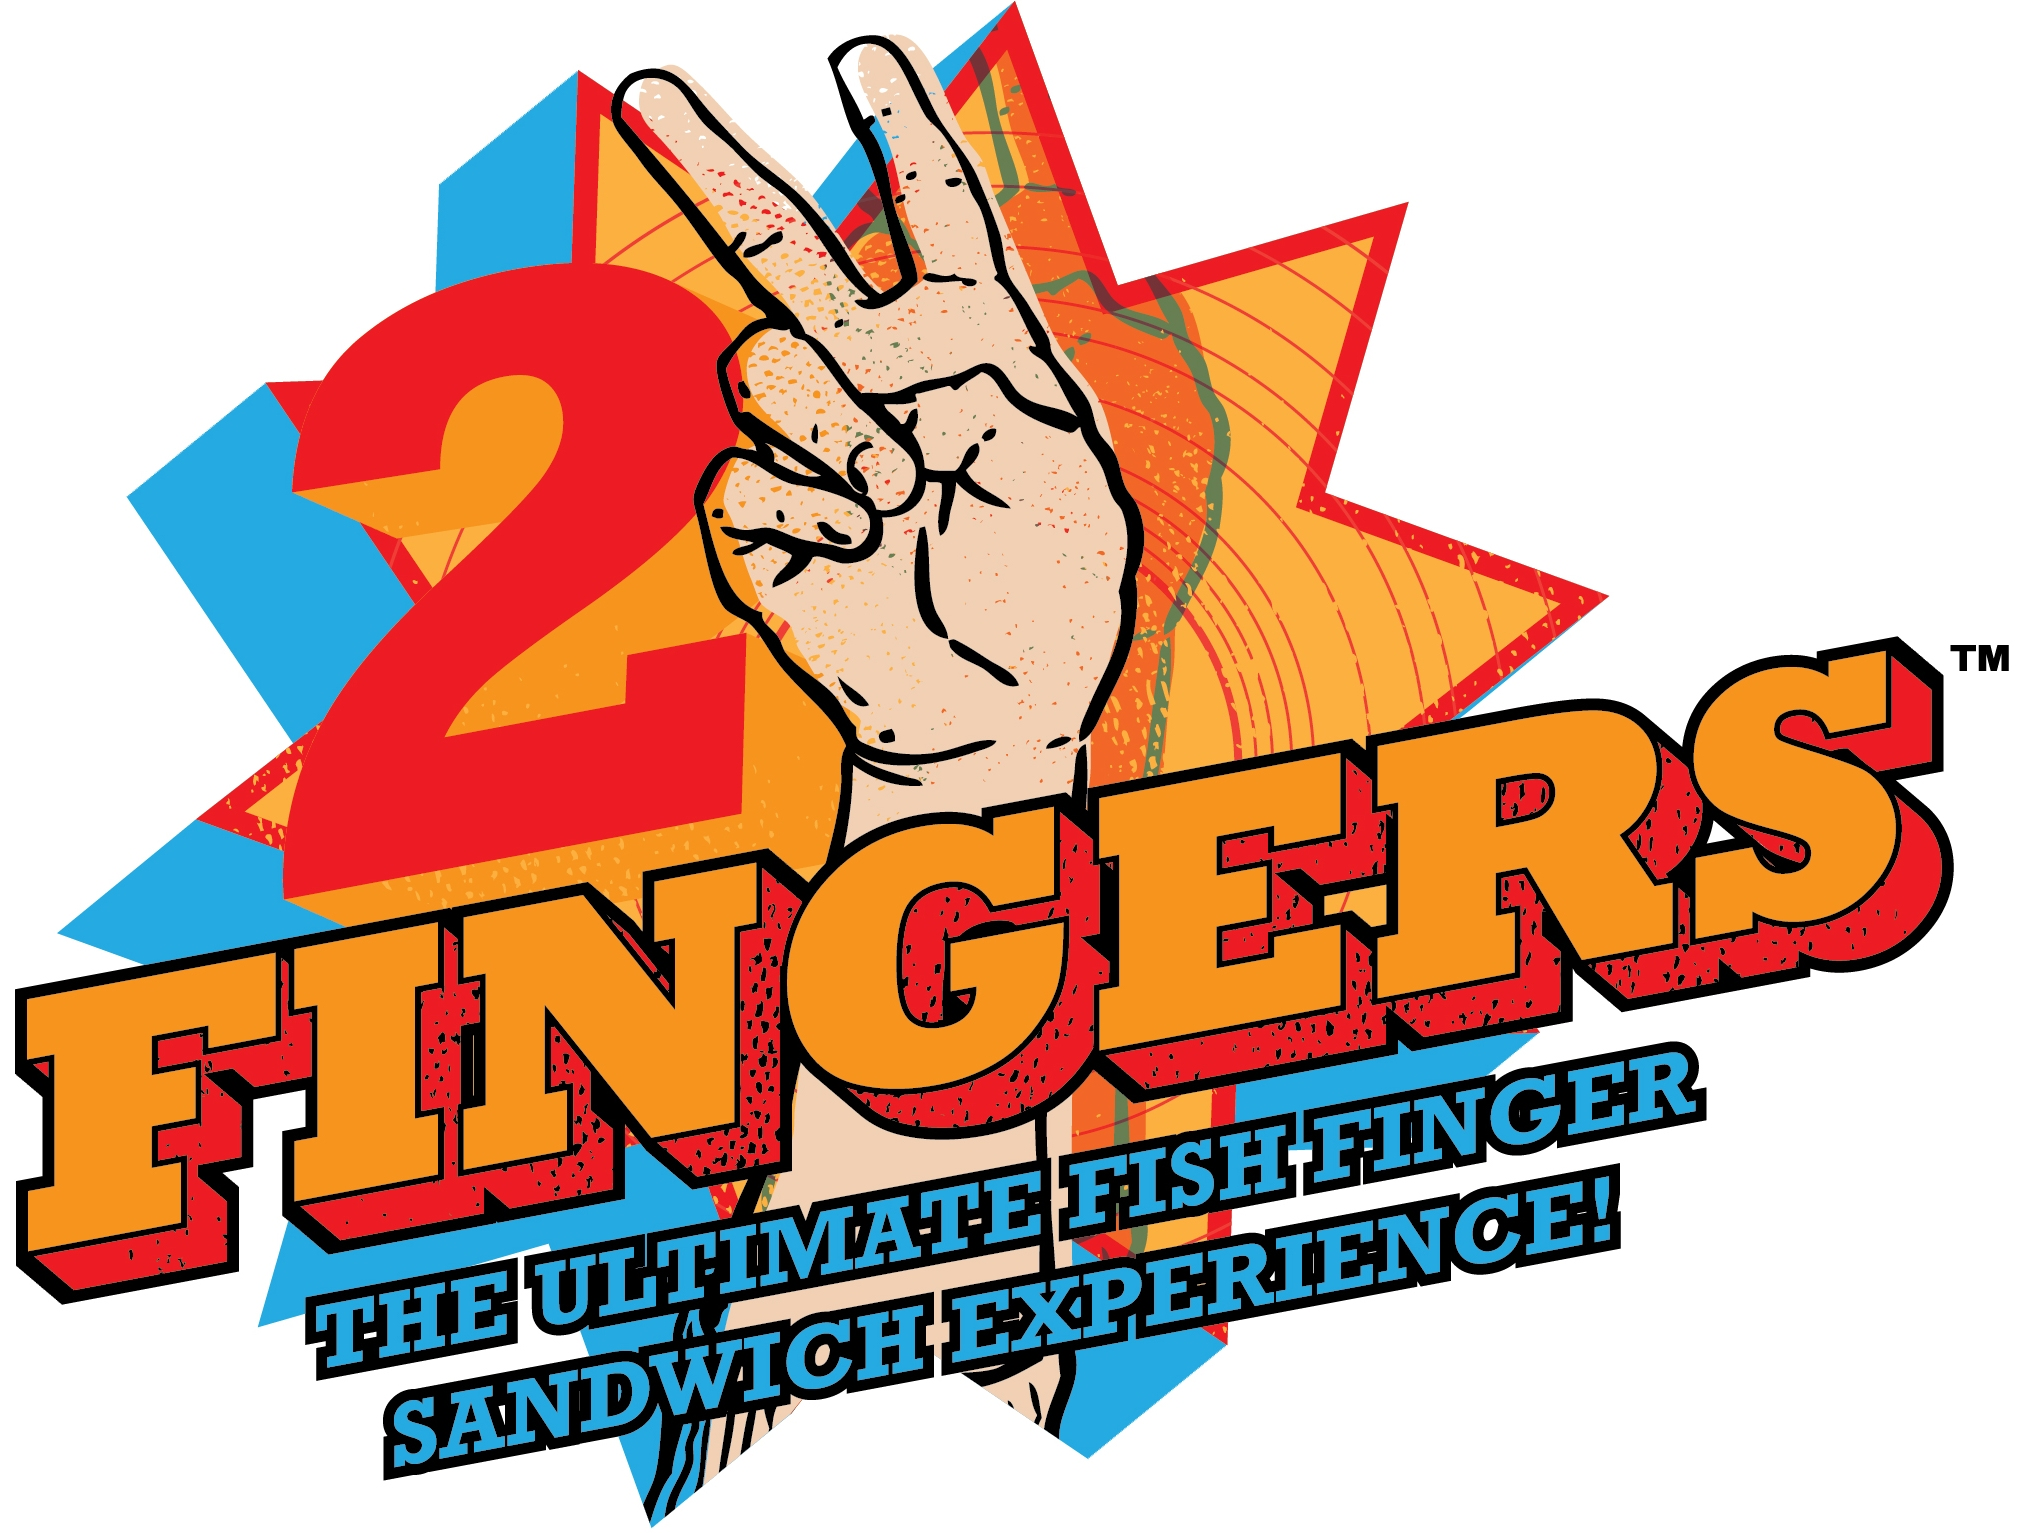 2 Fingers_A4_Page_Header.jpg